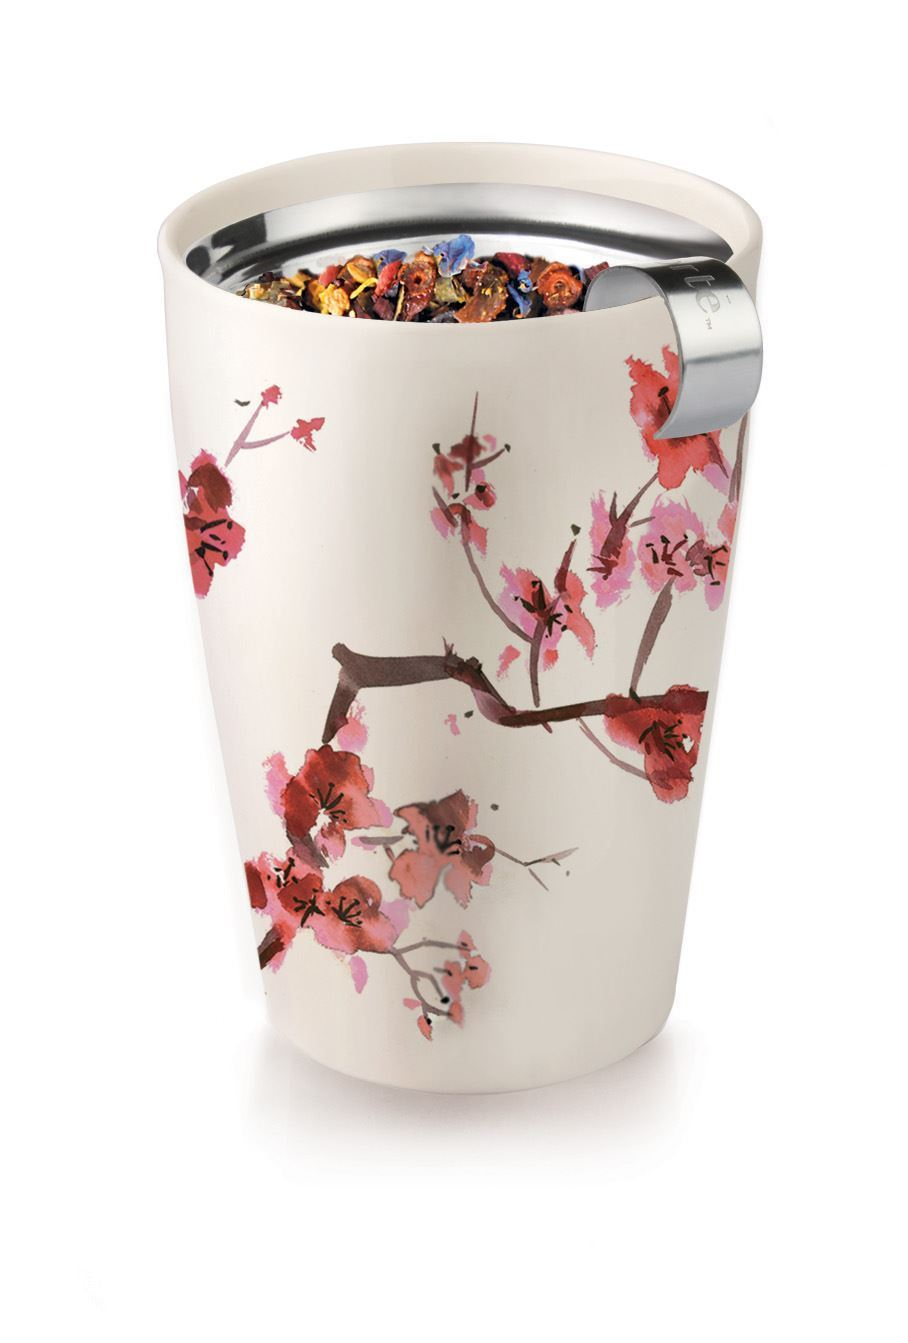 cherry blossom kati tea infuser mug the seasoned home. Black Bedroom Furniture Sets. Home Design Ideas